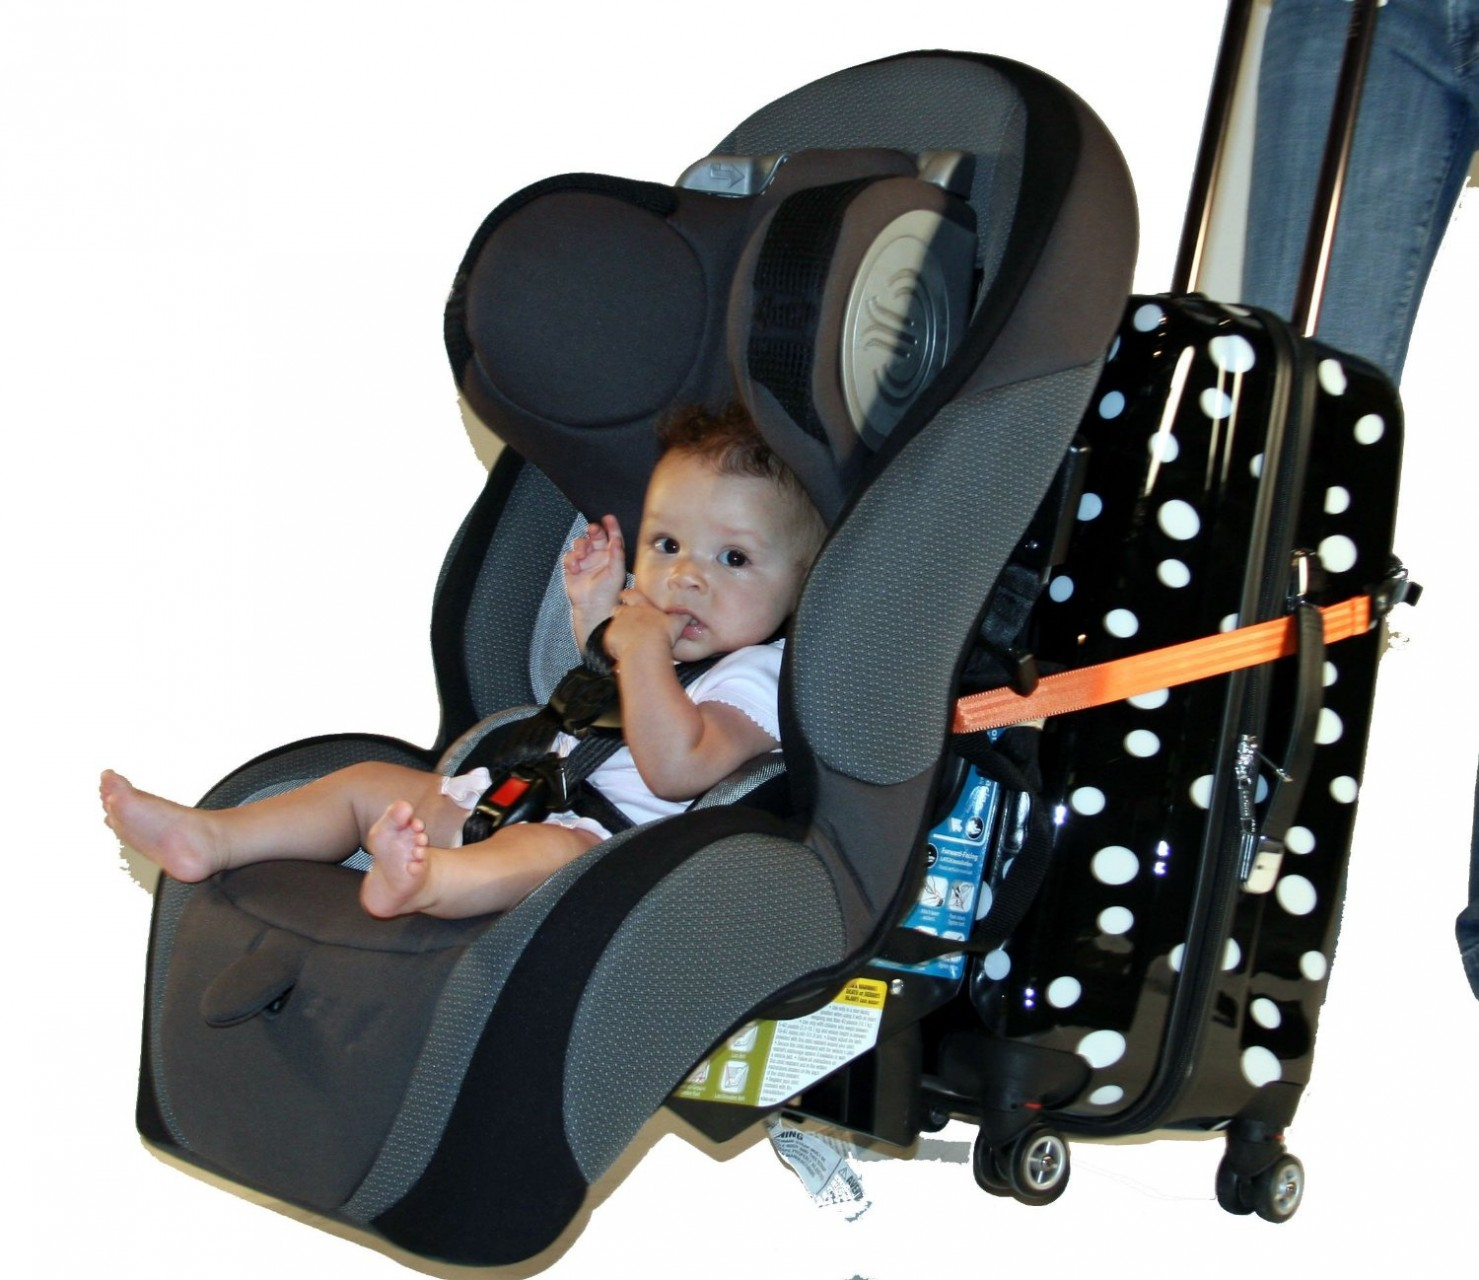 Child Car Seat Usa Carseatblog The Most Trusted Source For Car Seat Reviews